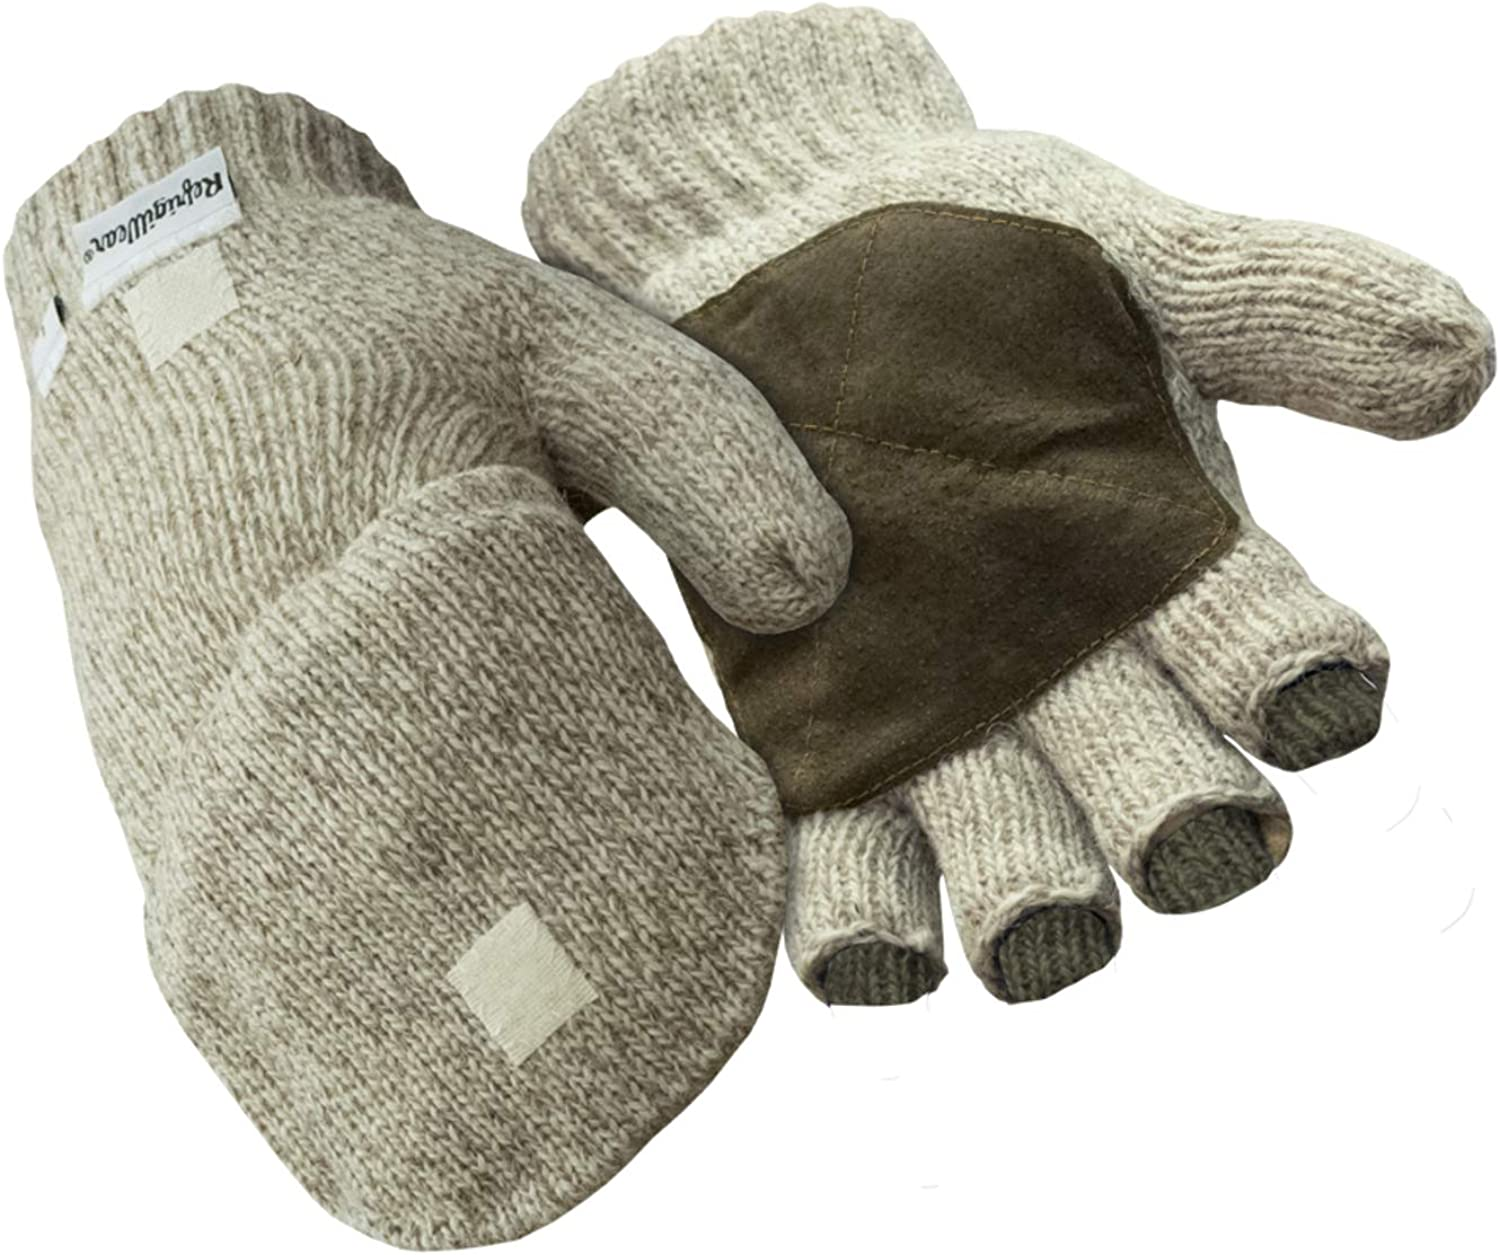 RefrigiWear Thinsulate Insulated Ragg Wool Convertible Mitten Fingerless Gloves with Suede Palm